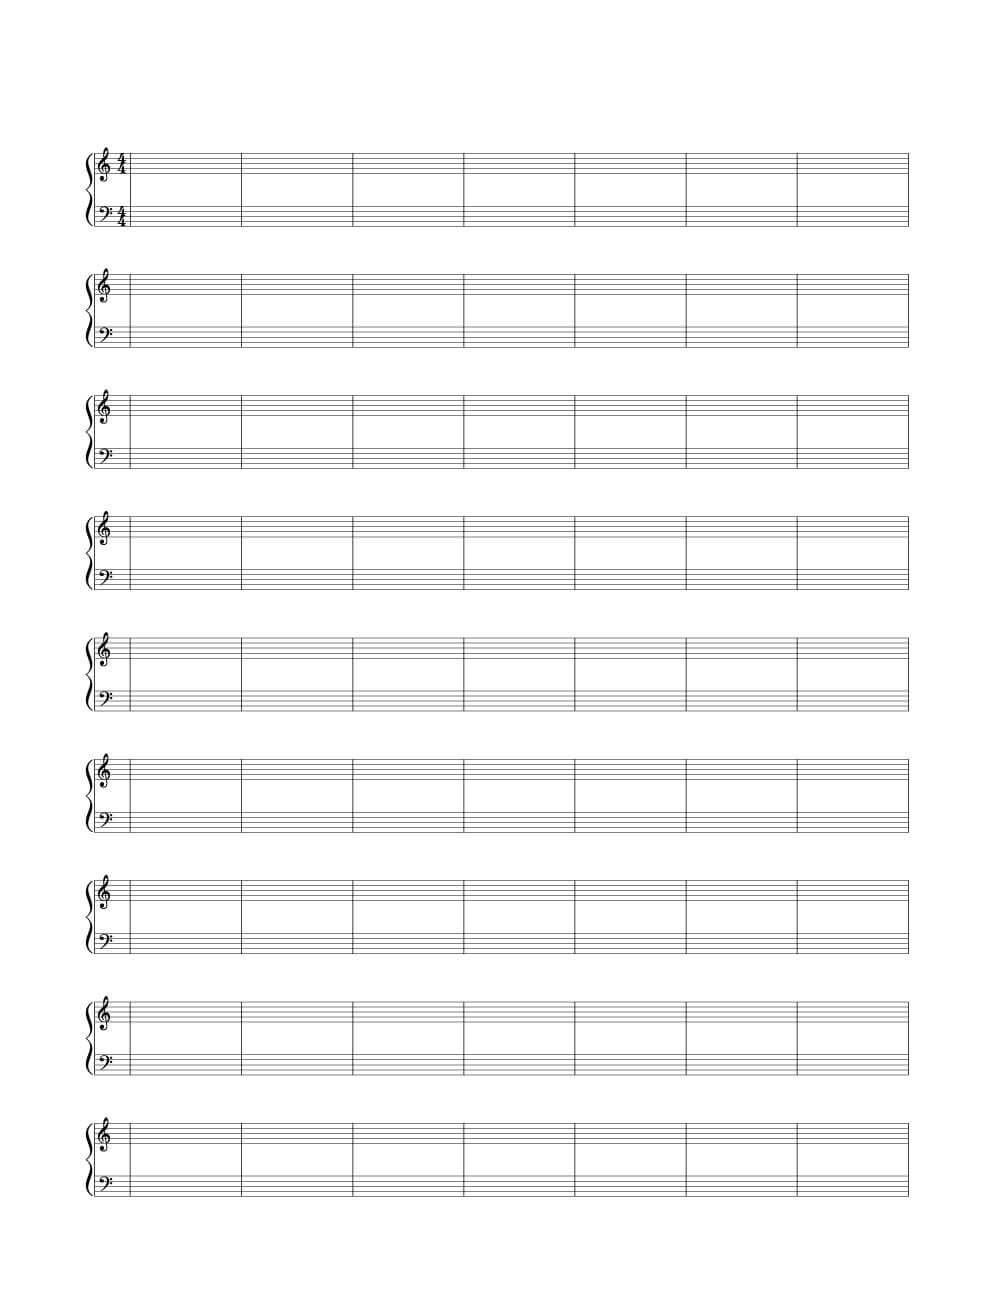 4/4 Time Signature Double Bar Blank Sheet Music | Woo! Jr With Regard To Blank Sheet Music Template For Word